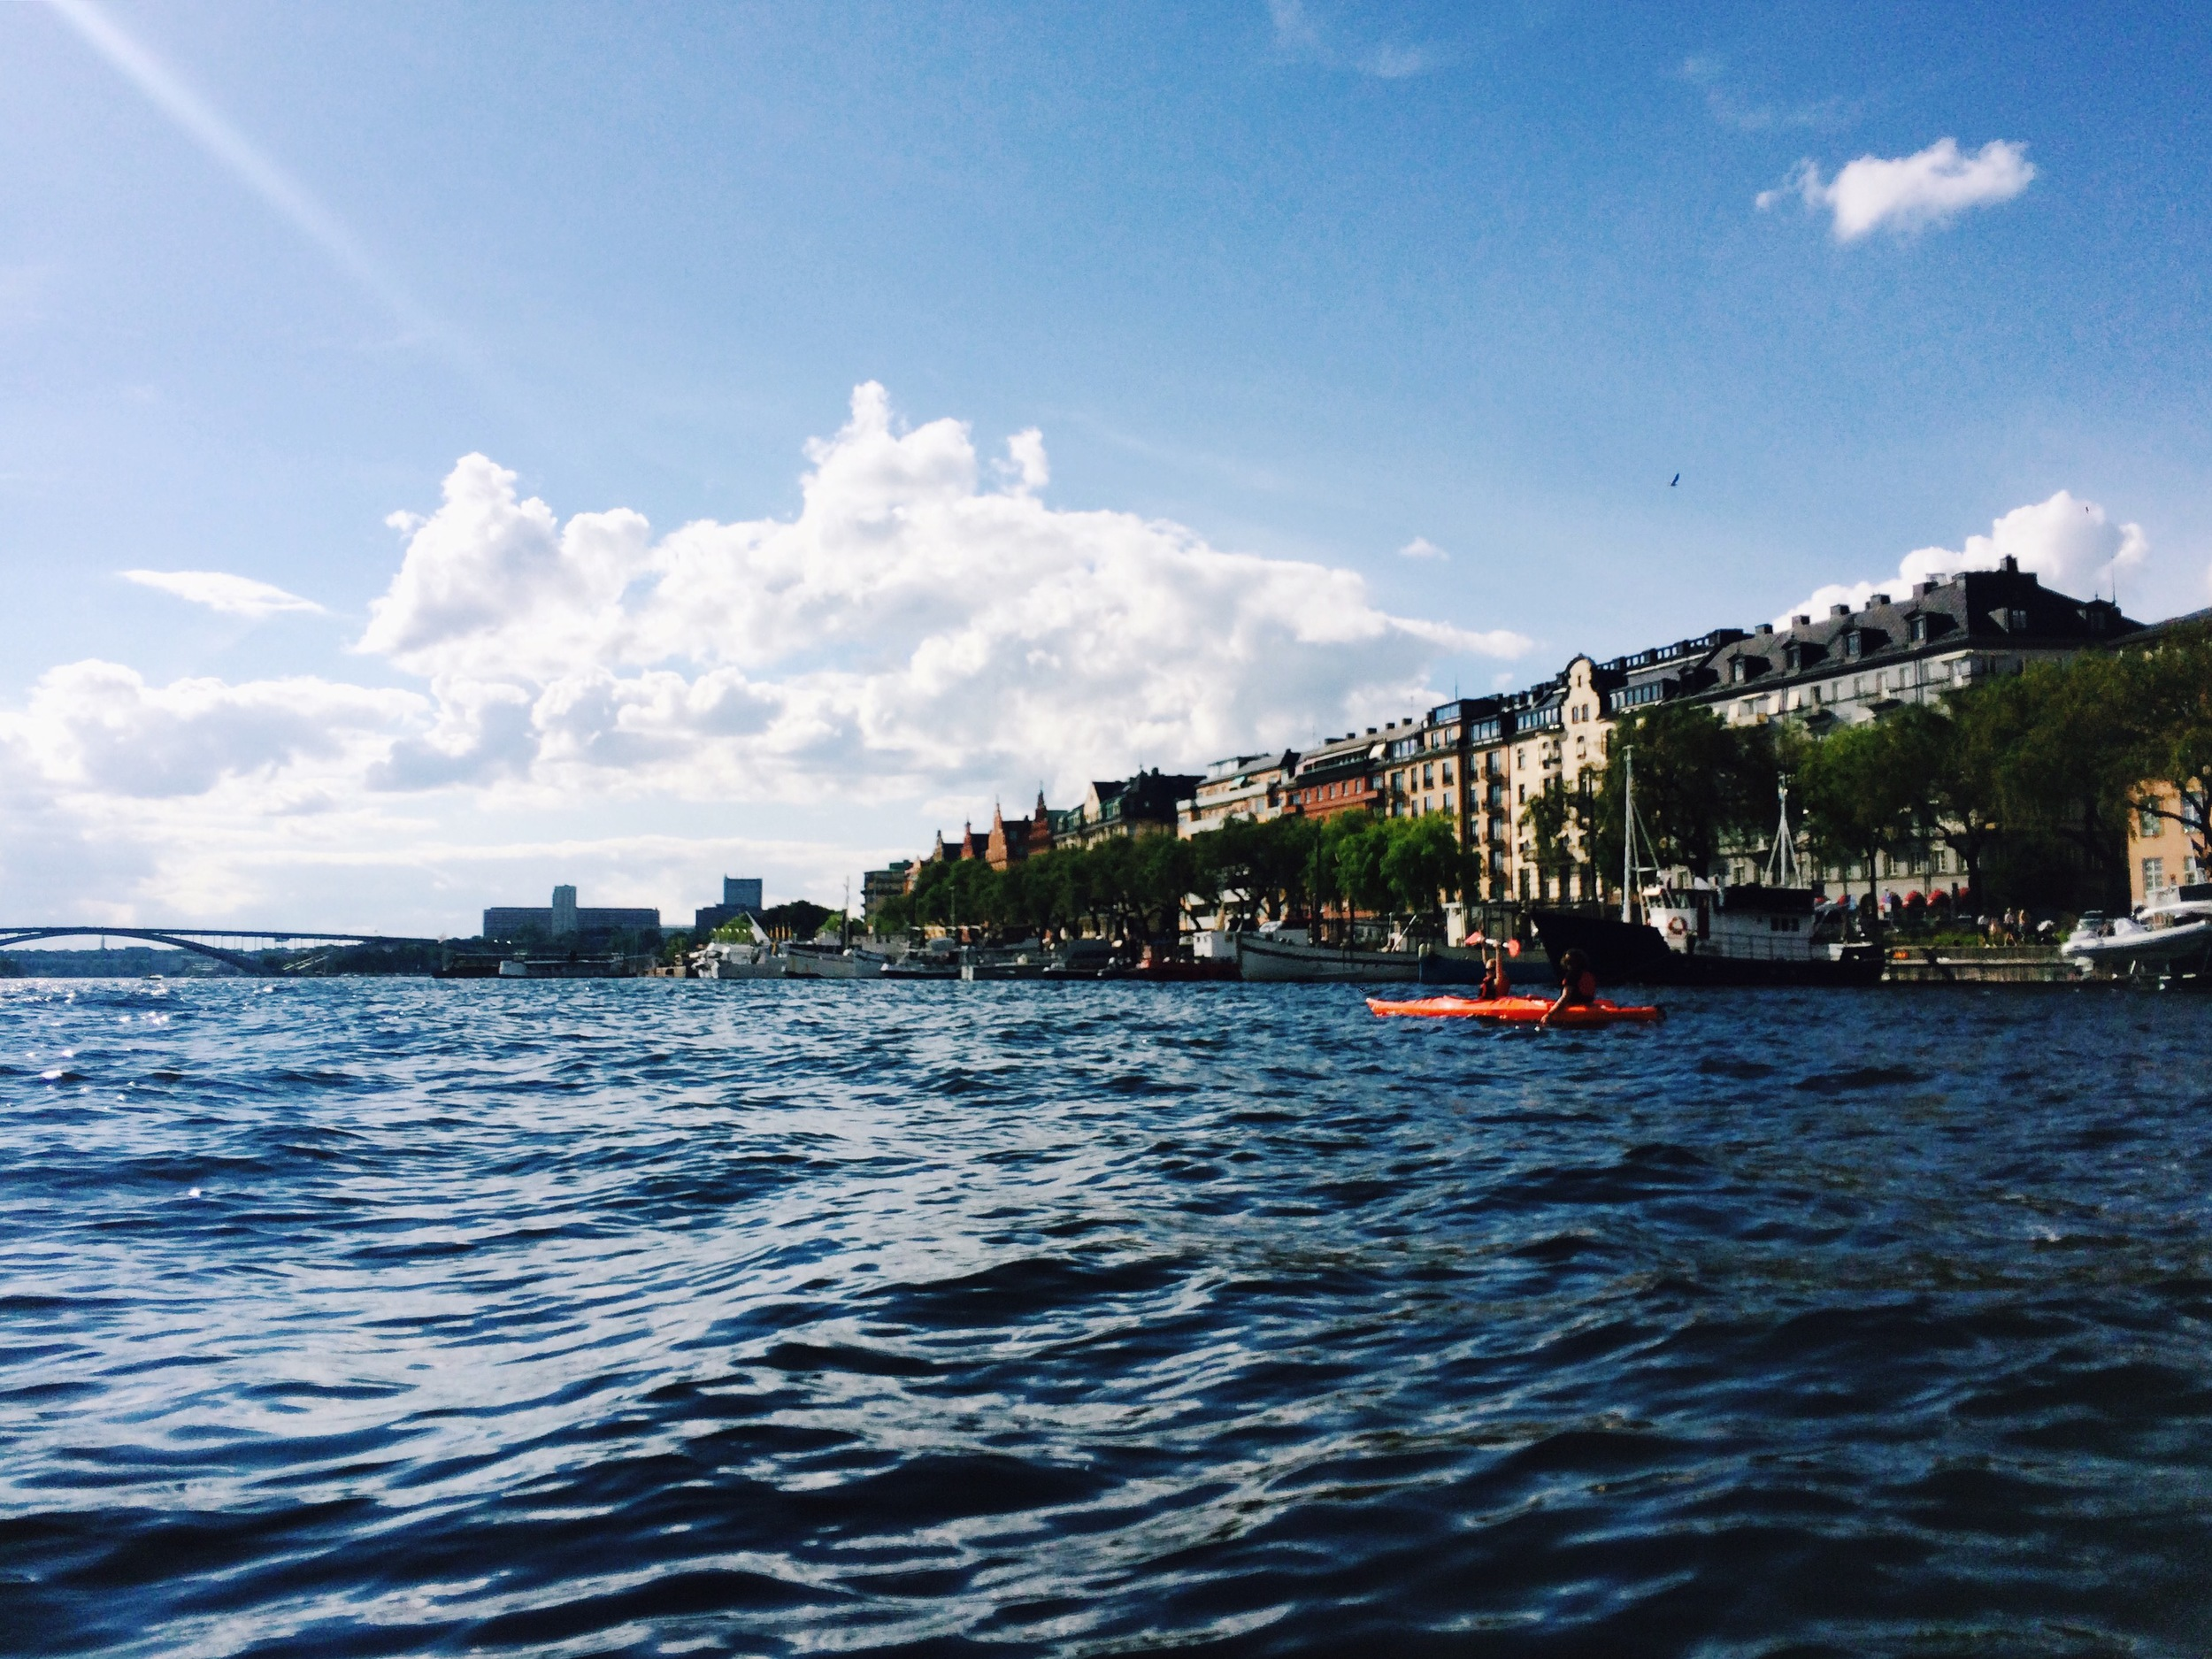 Kungsholmen by kayak